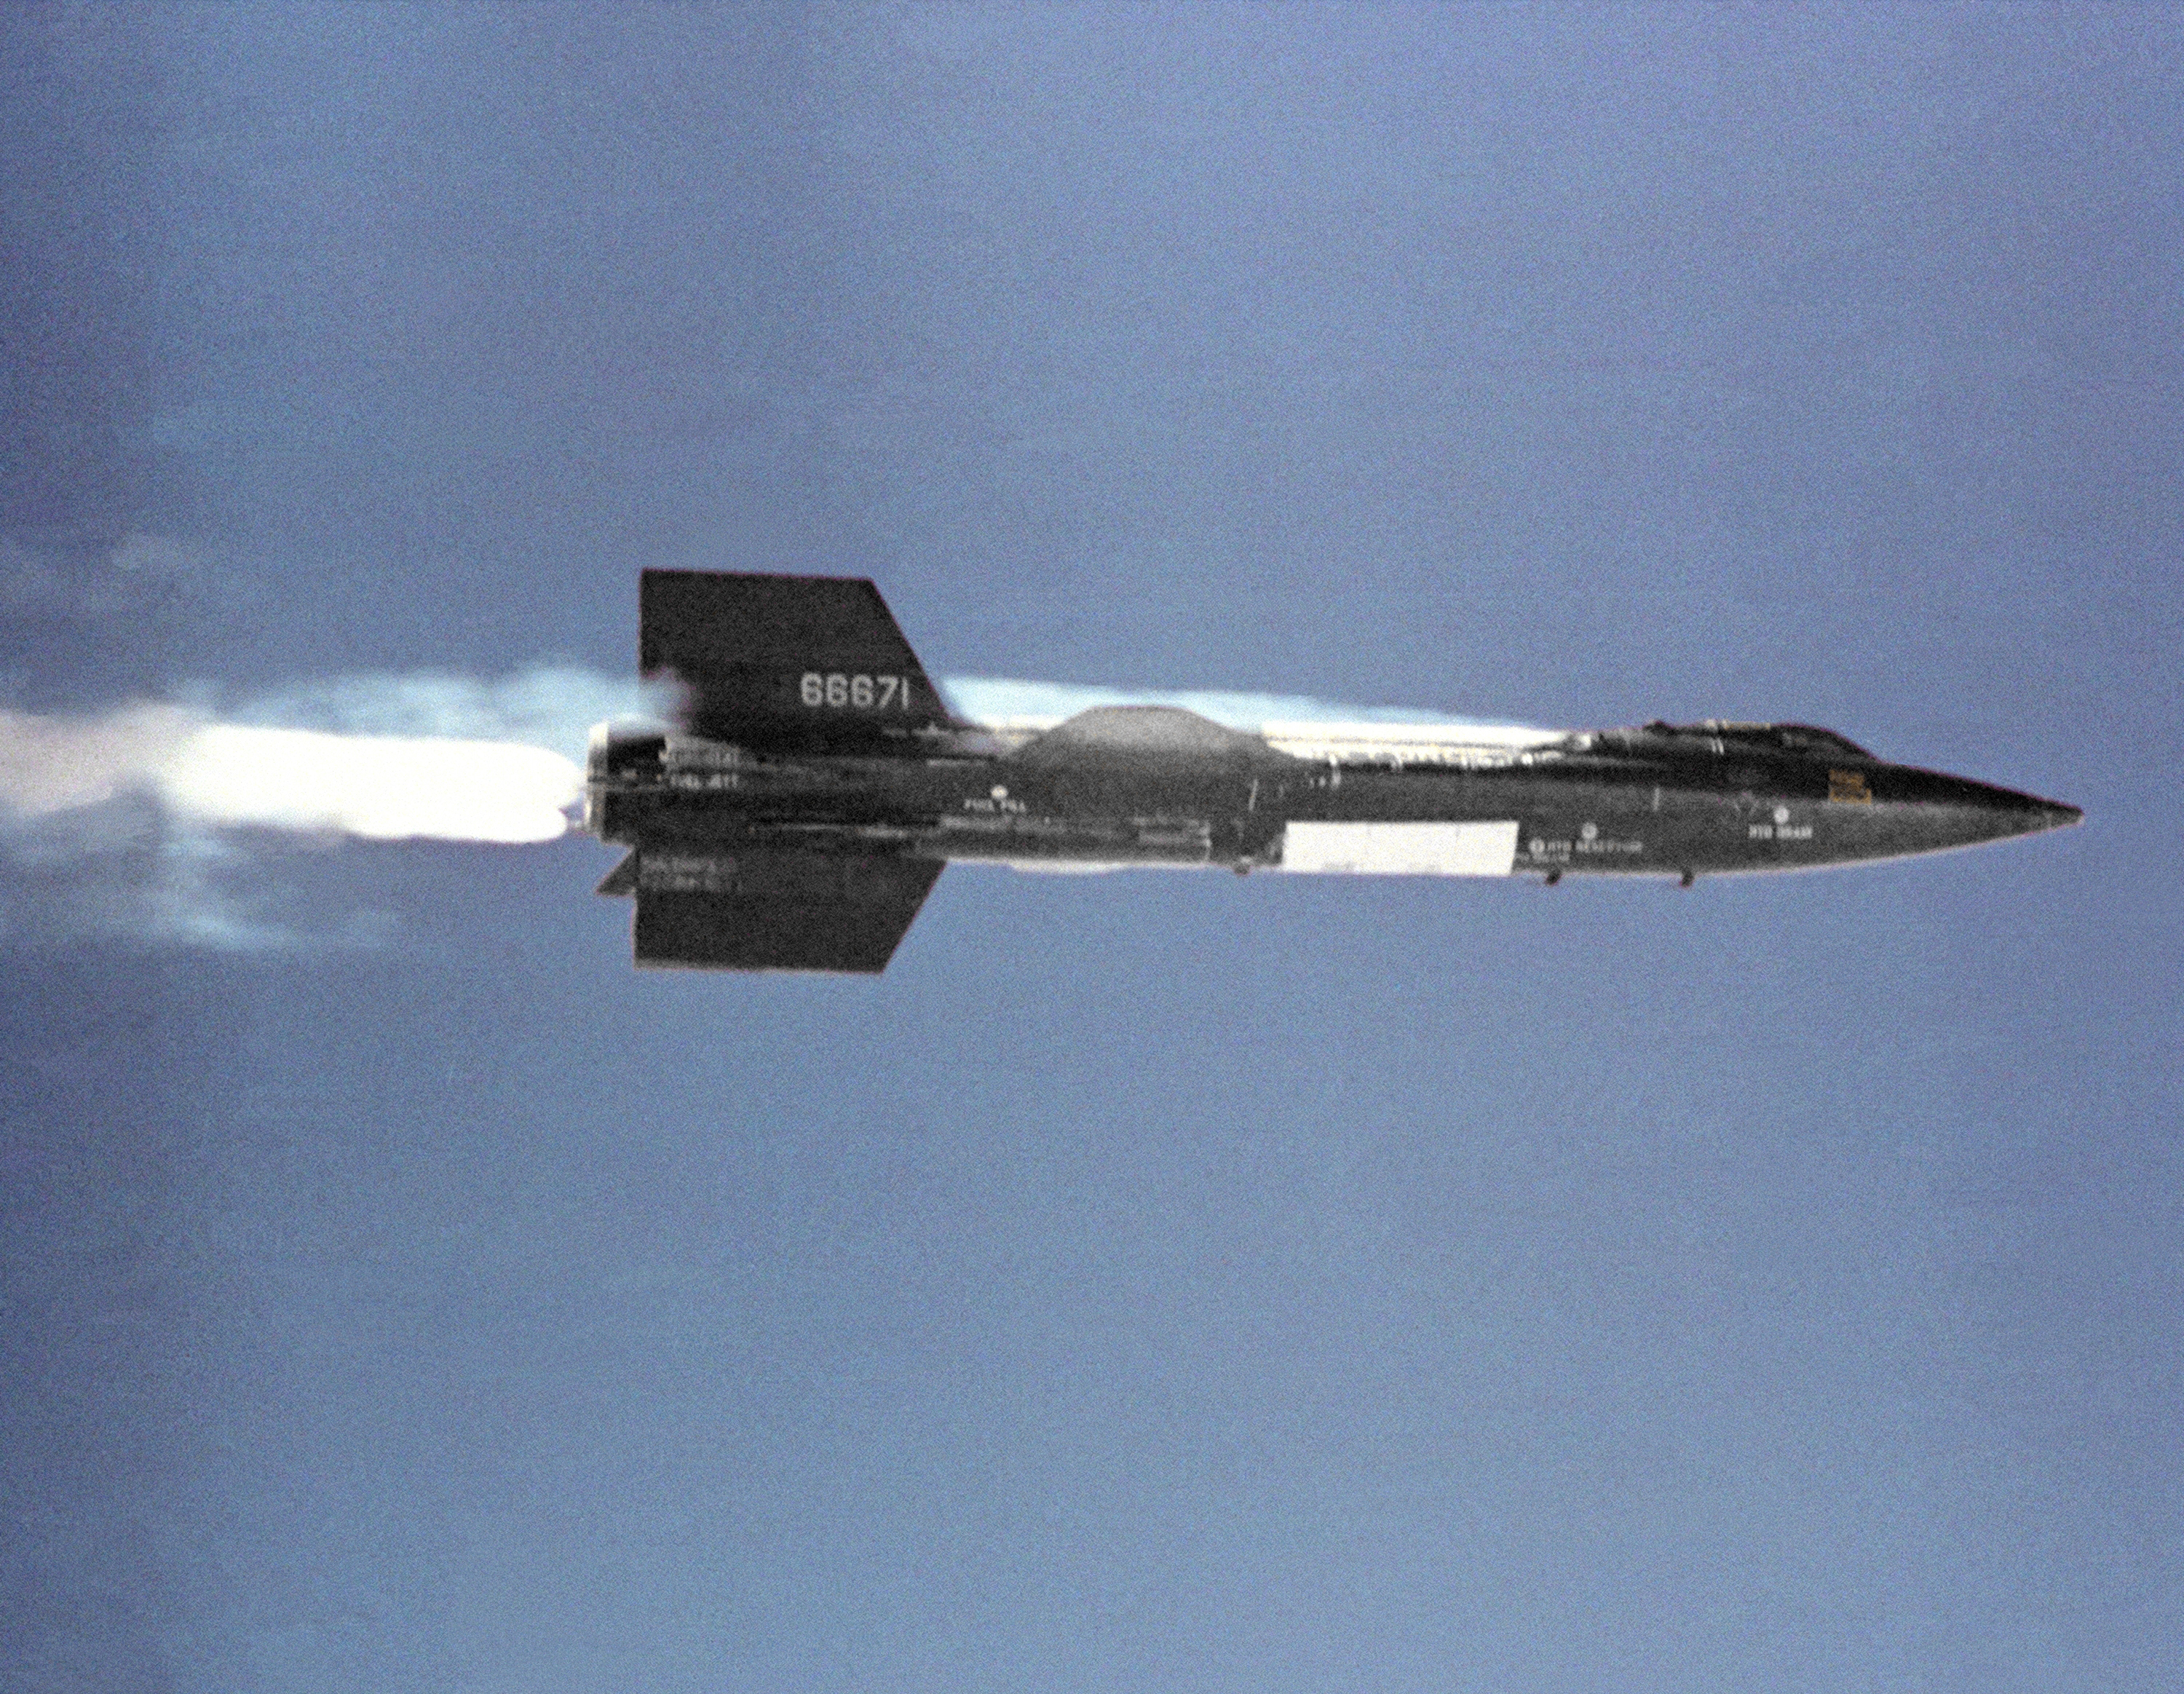 The X-15 research aircraft on its first powered flight on September 17 ...